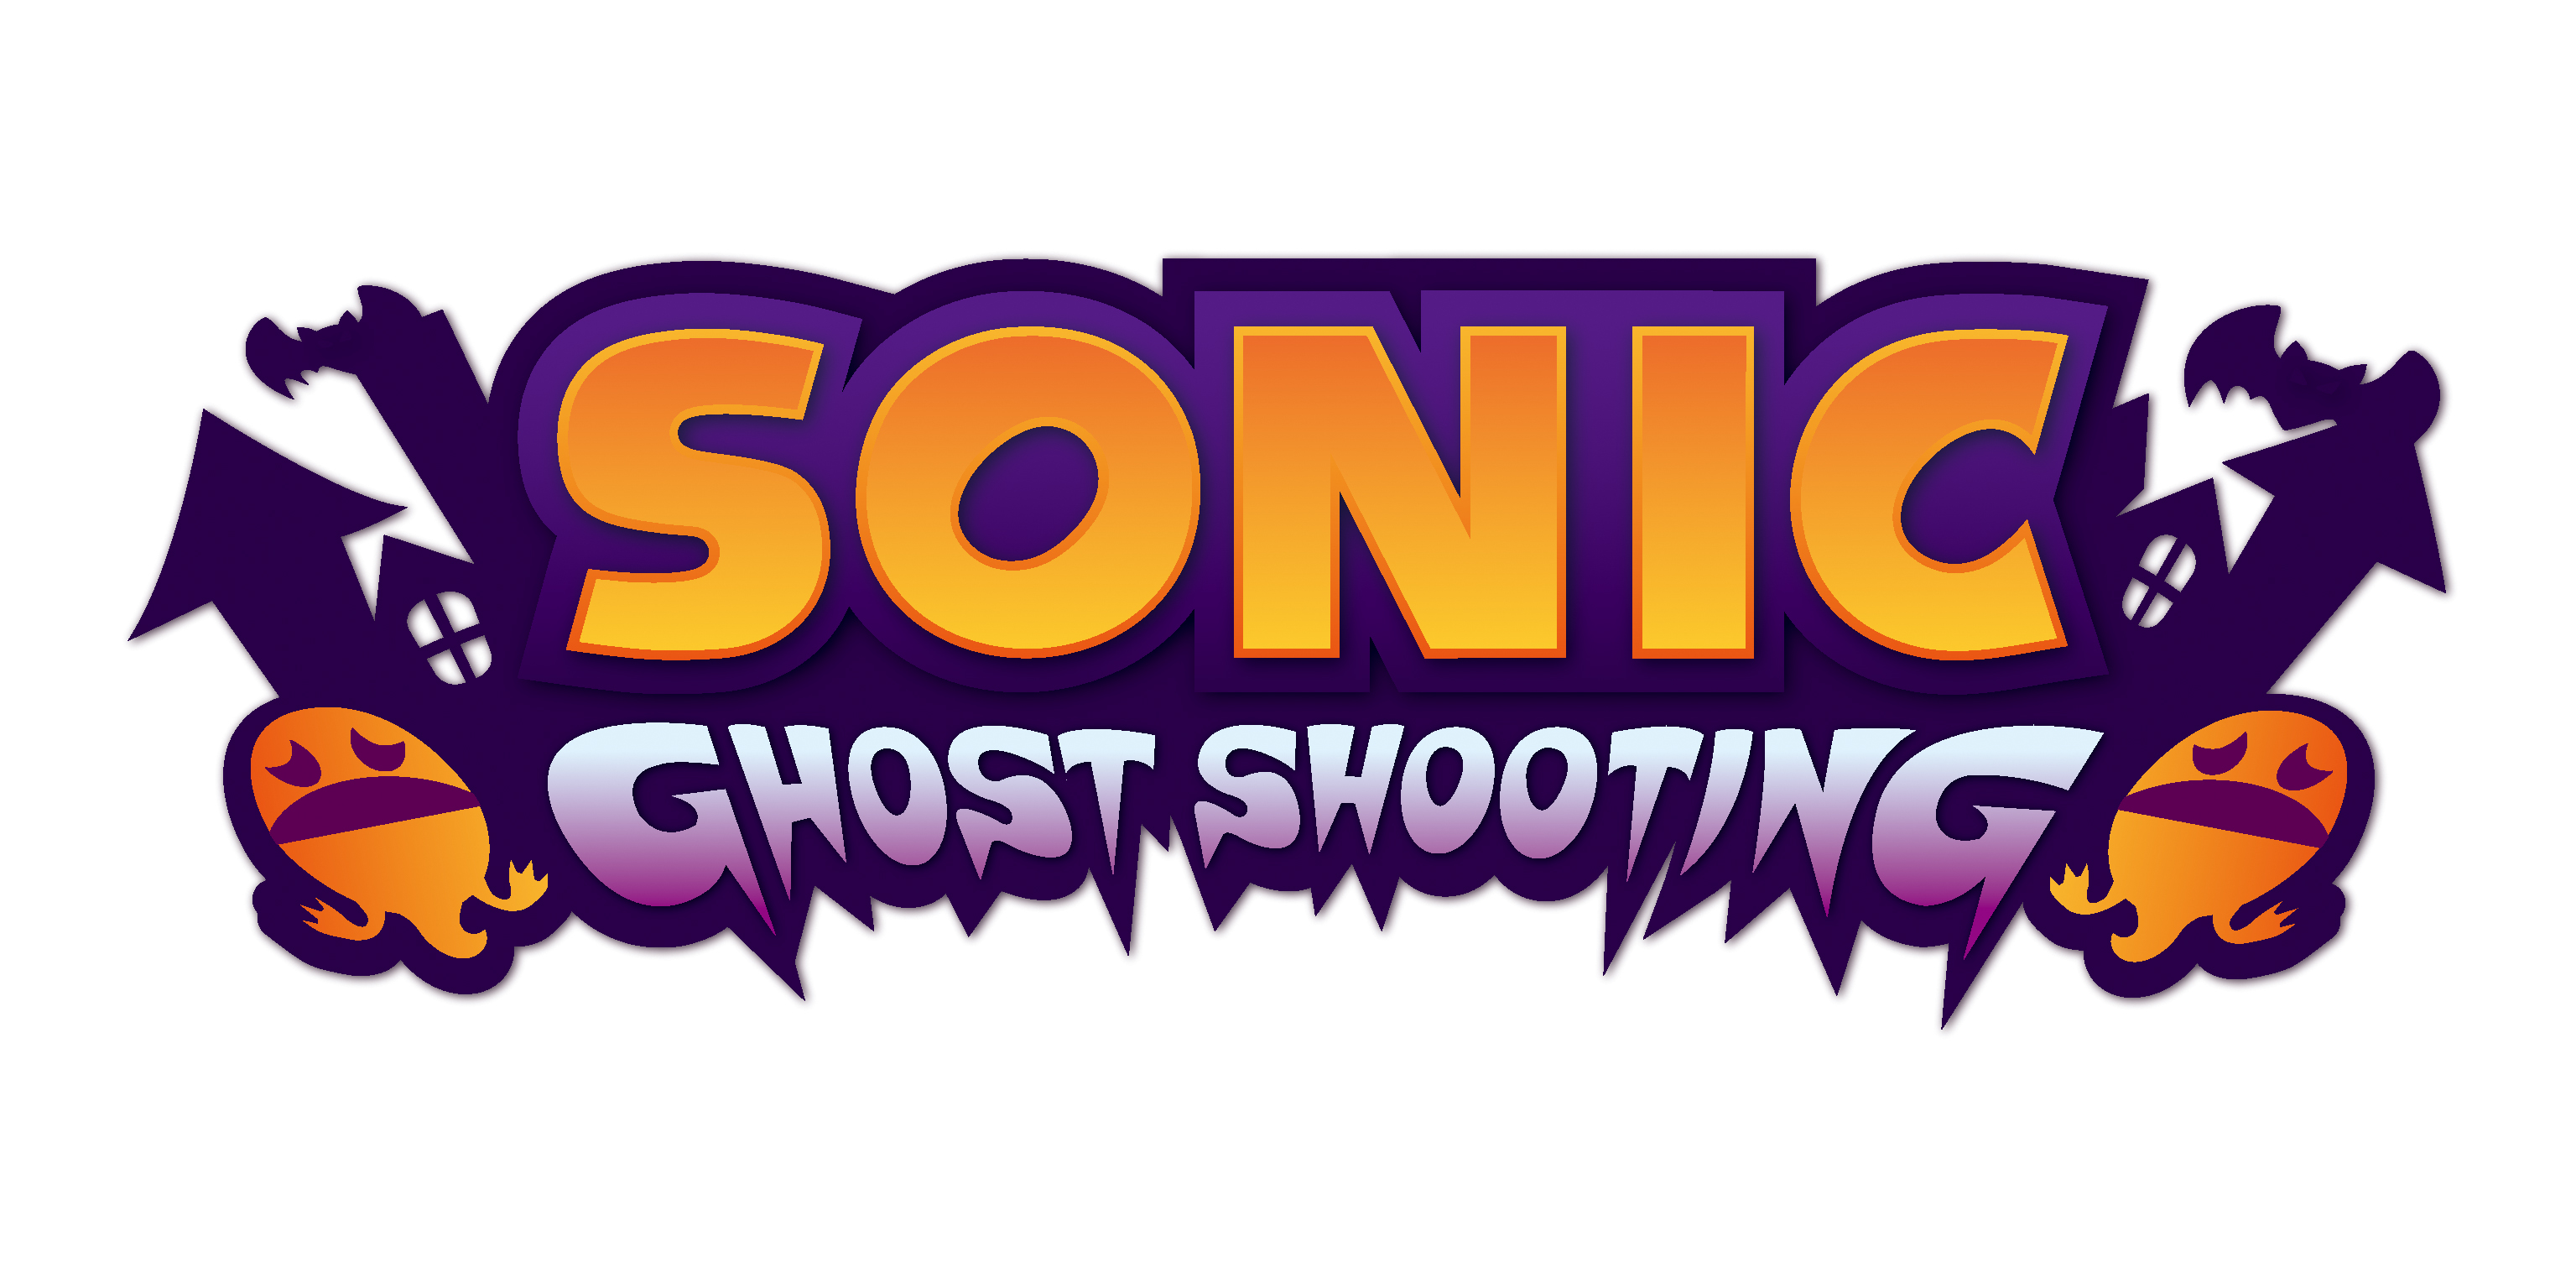 File:Sonic Ghost Shooting Logo.jpg